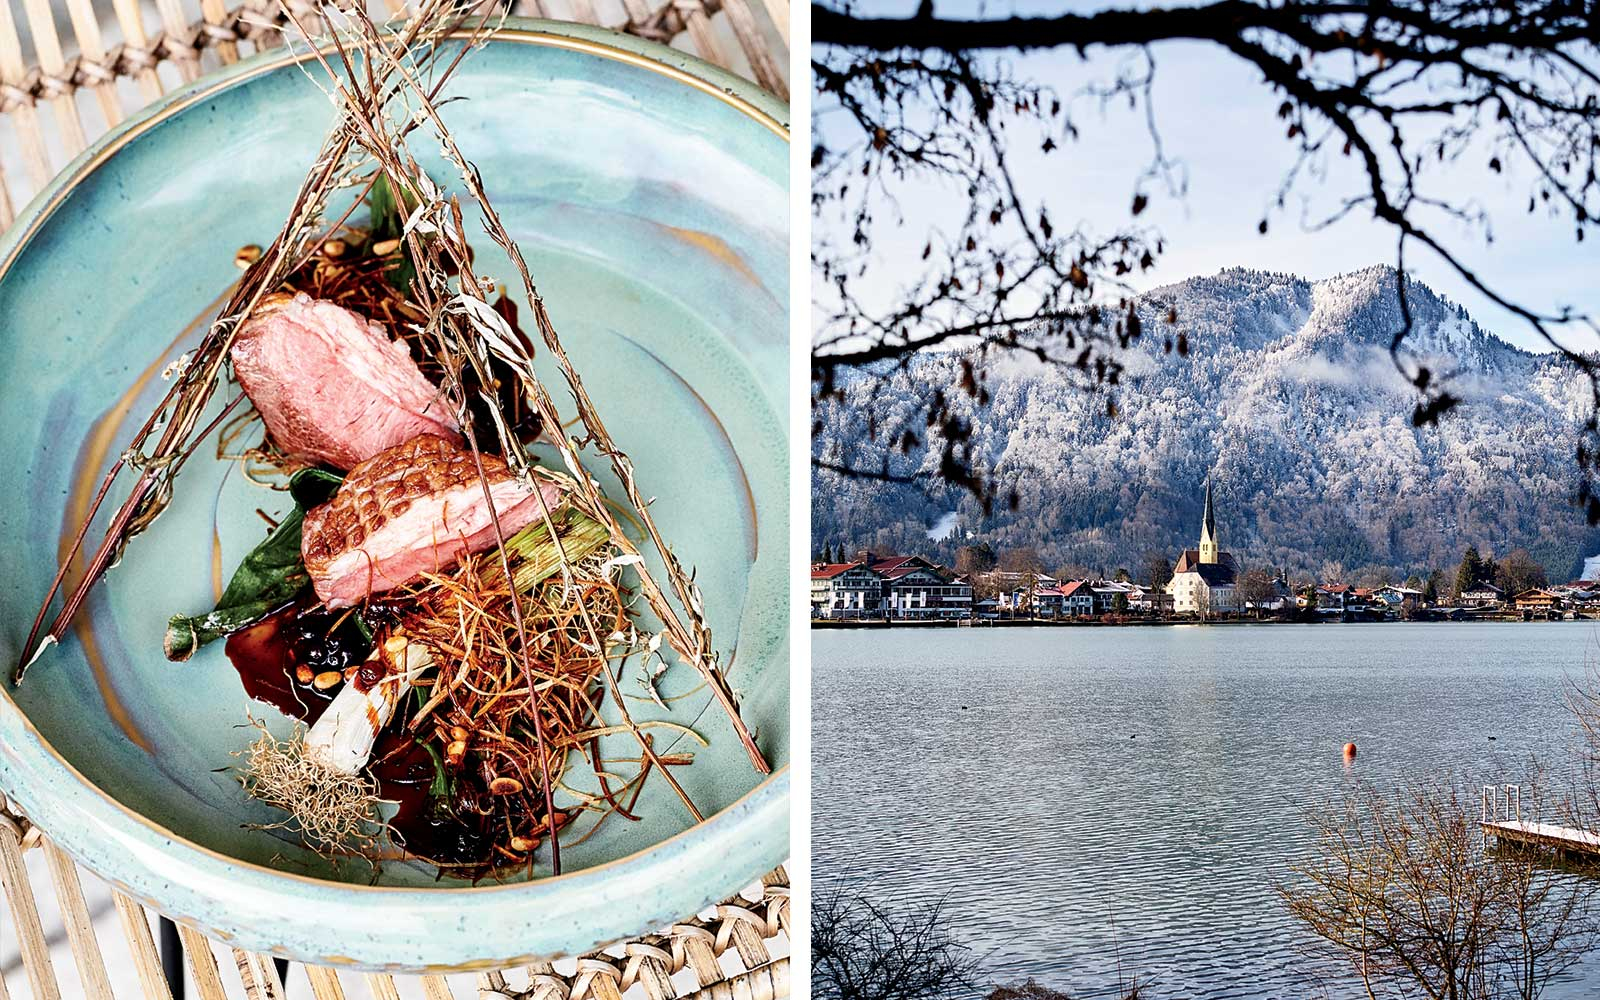 Lamb at Mizu restaurant, and a view of Tegernsee Lake and Rottach-Egern